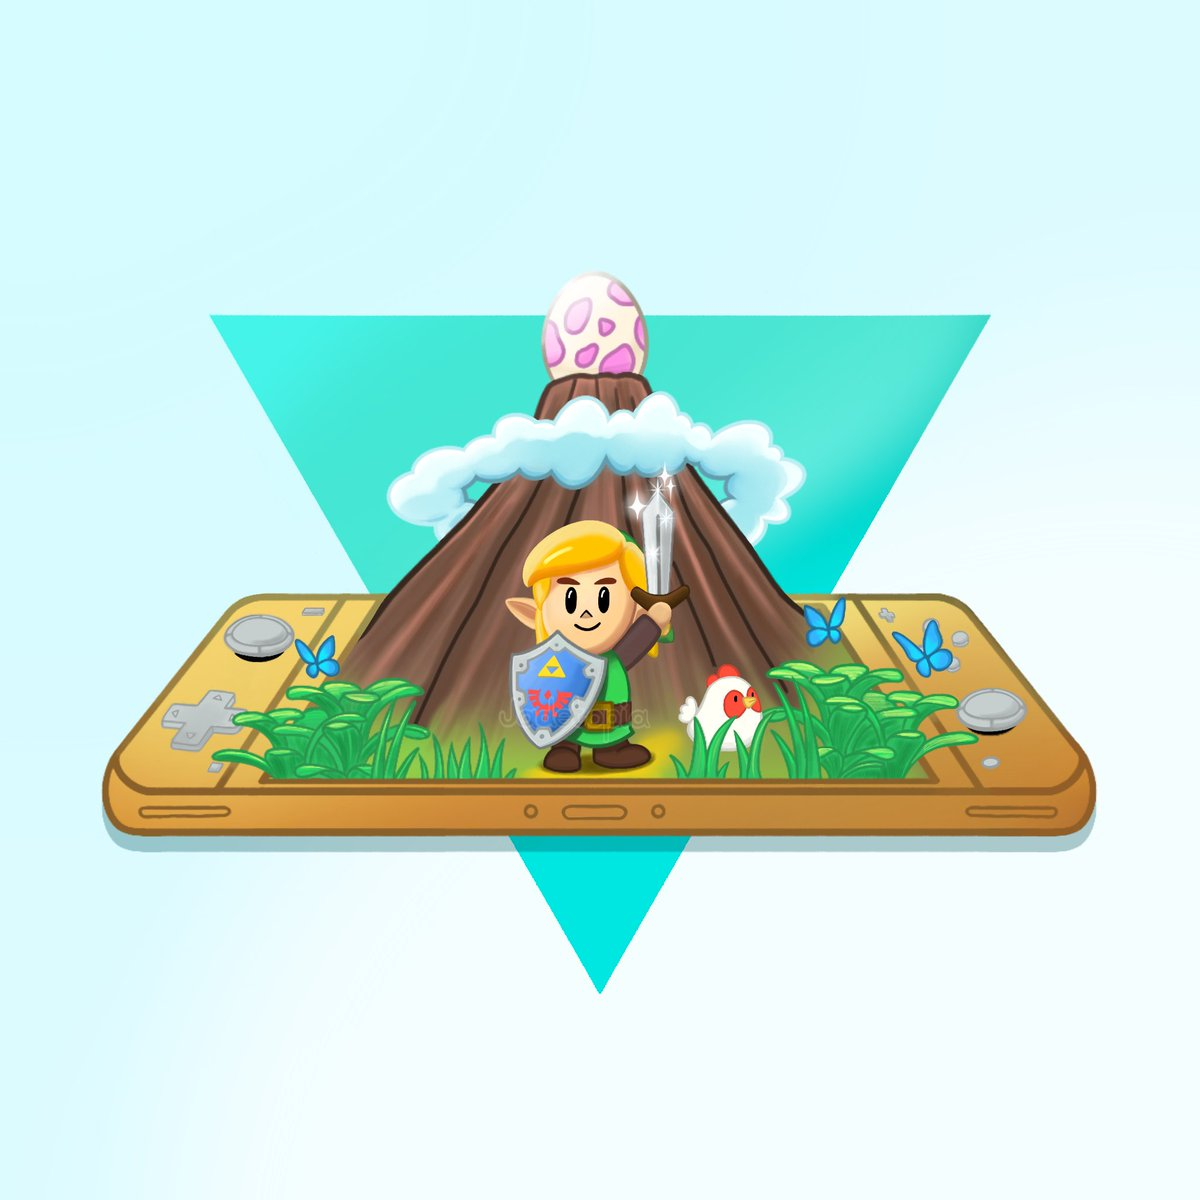 Super excited about the Switch Lite, so I had to draw something! Launch is the same day as Link's Awakening, so here's hoping there's a special gold version  #SwitchLite #linksawakening #fanart<br>http://pic.twitter.com/H0wHoxYaDy